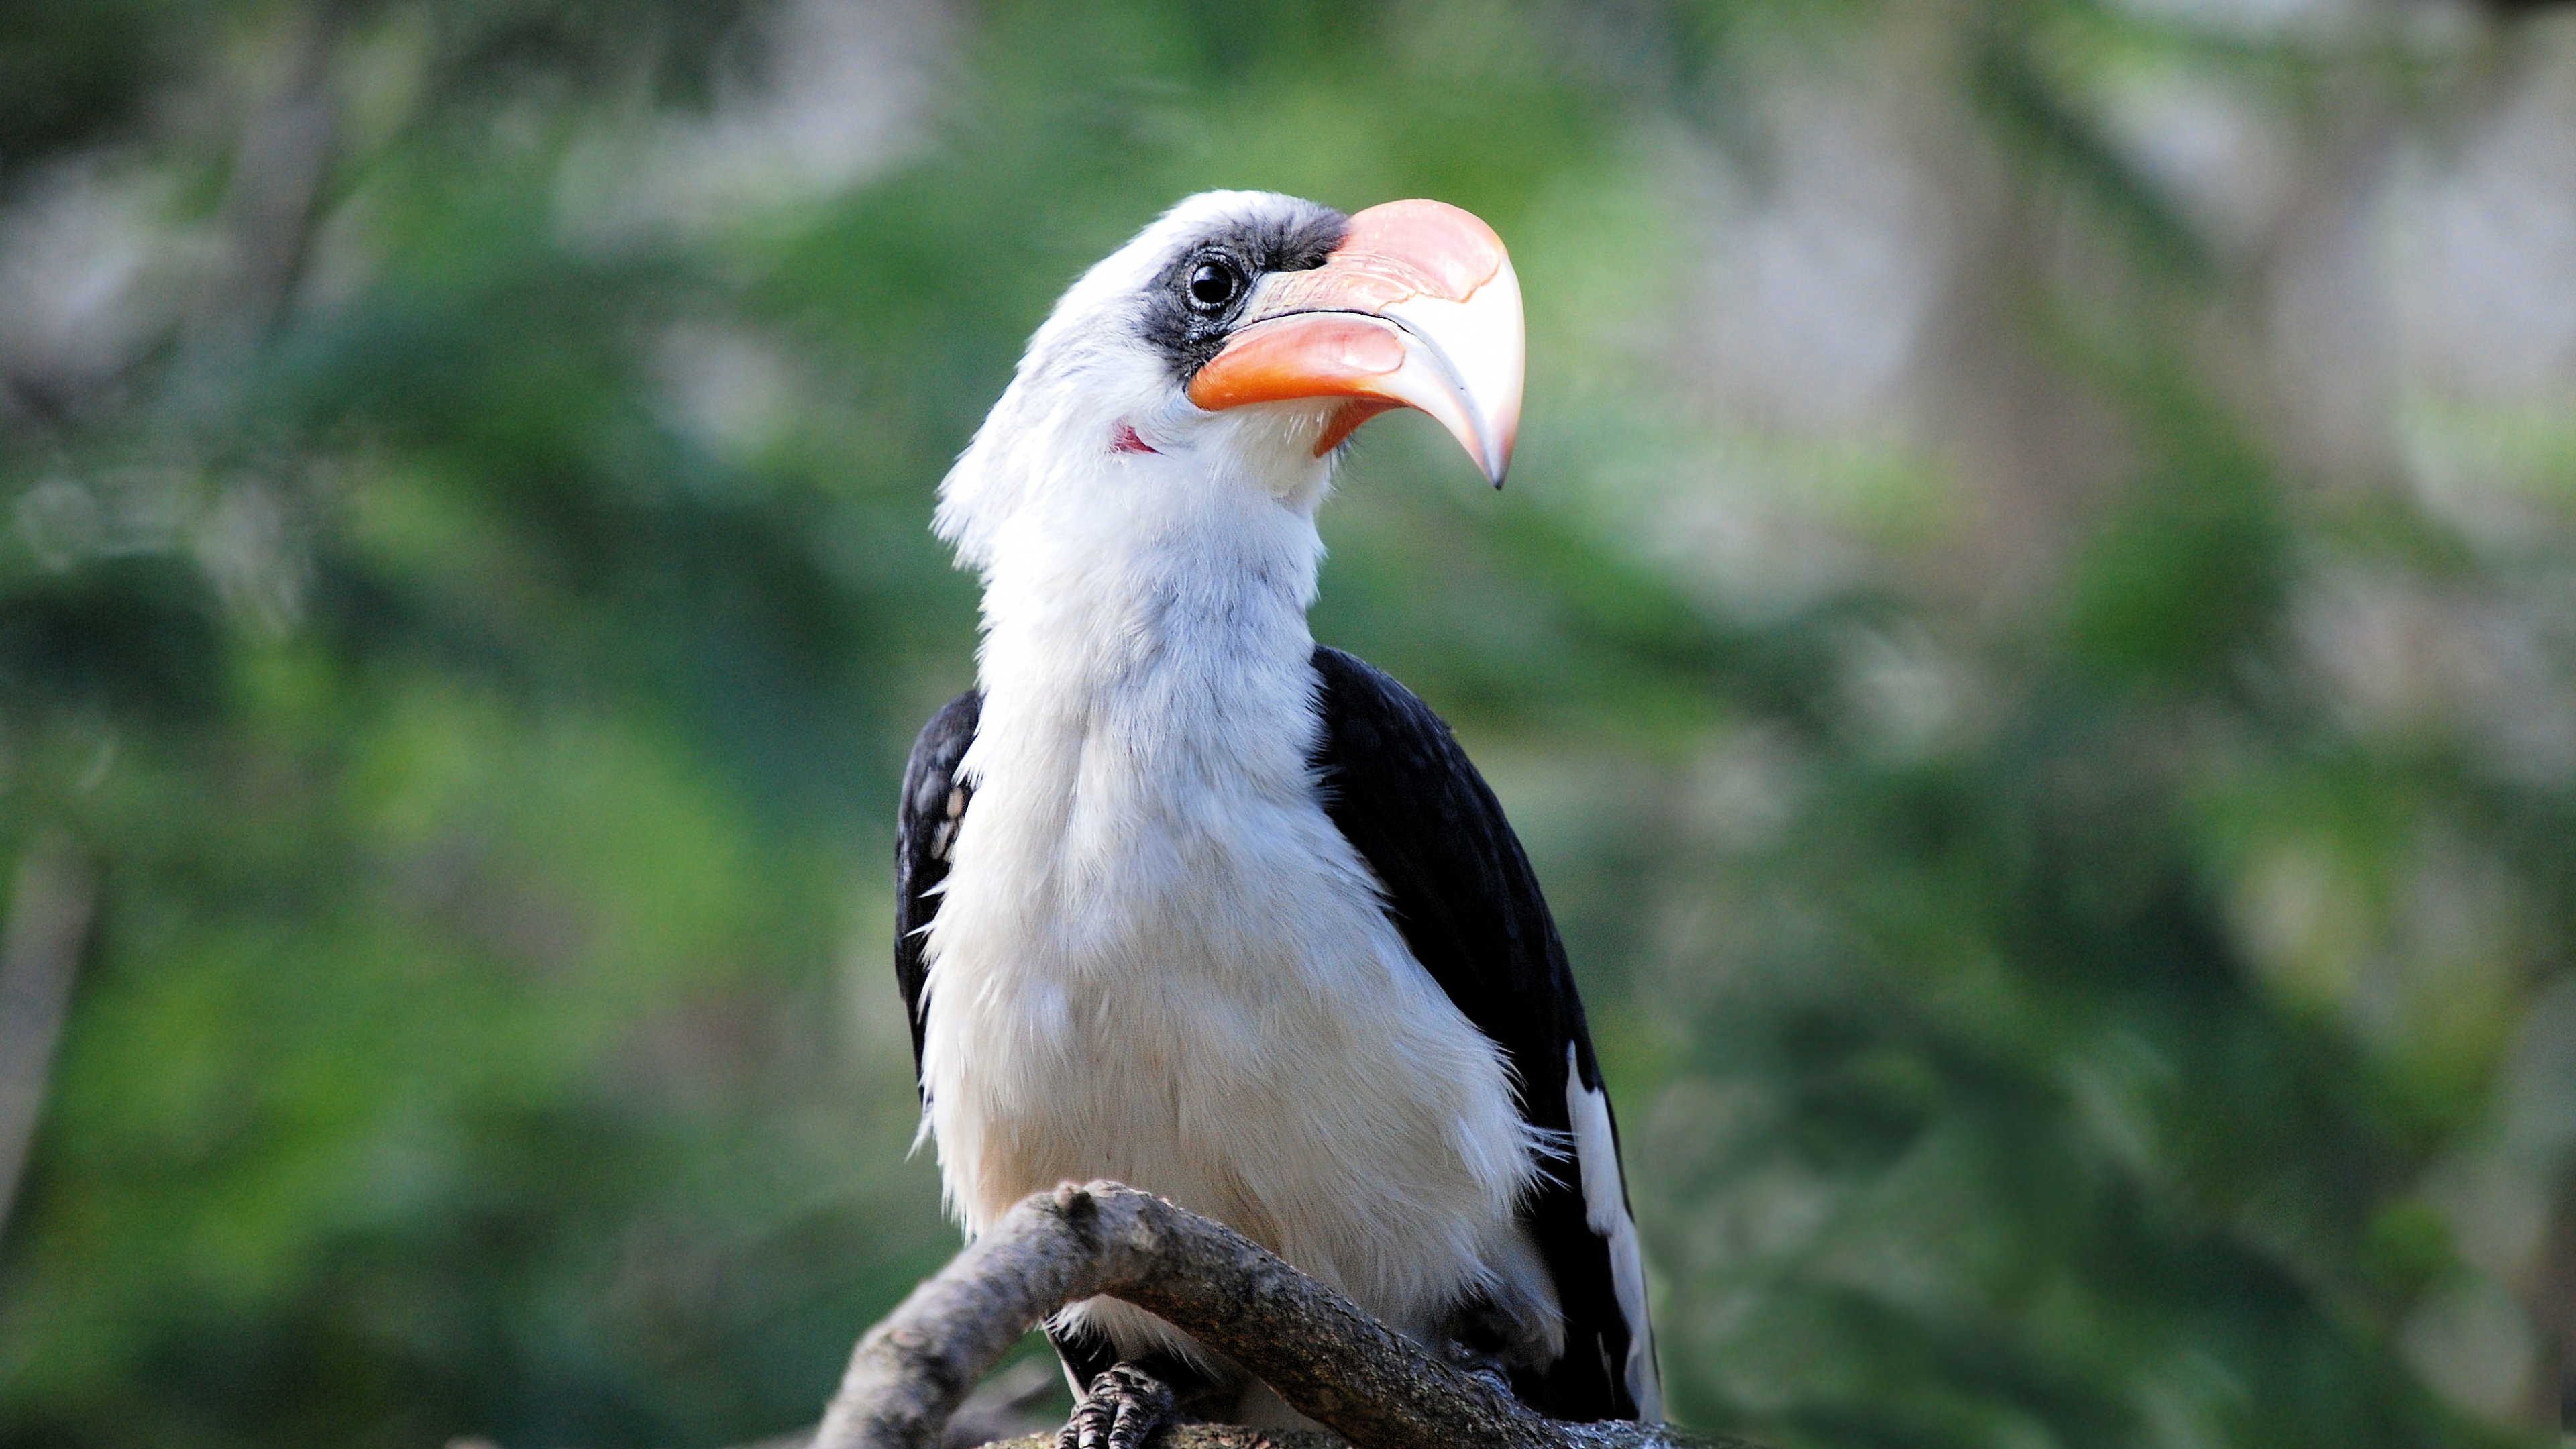 Great Hornbill Bird Beak